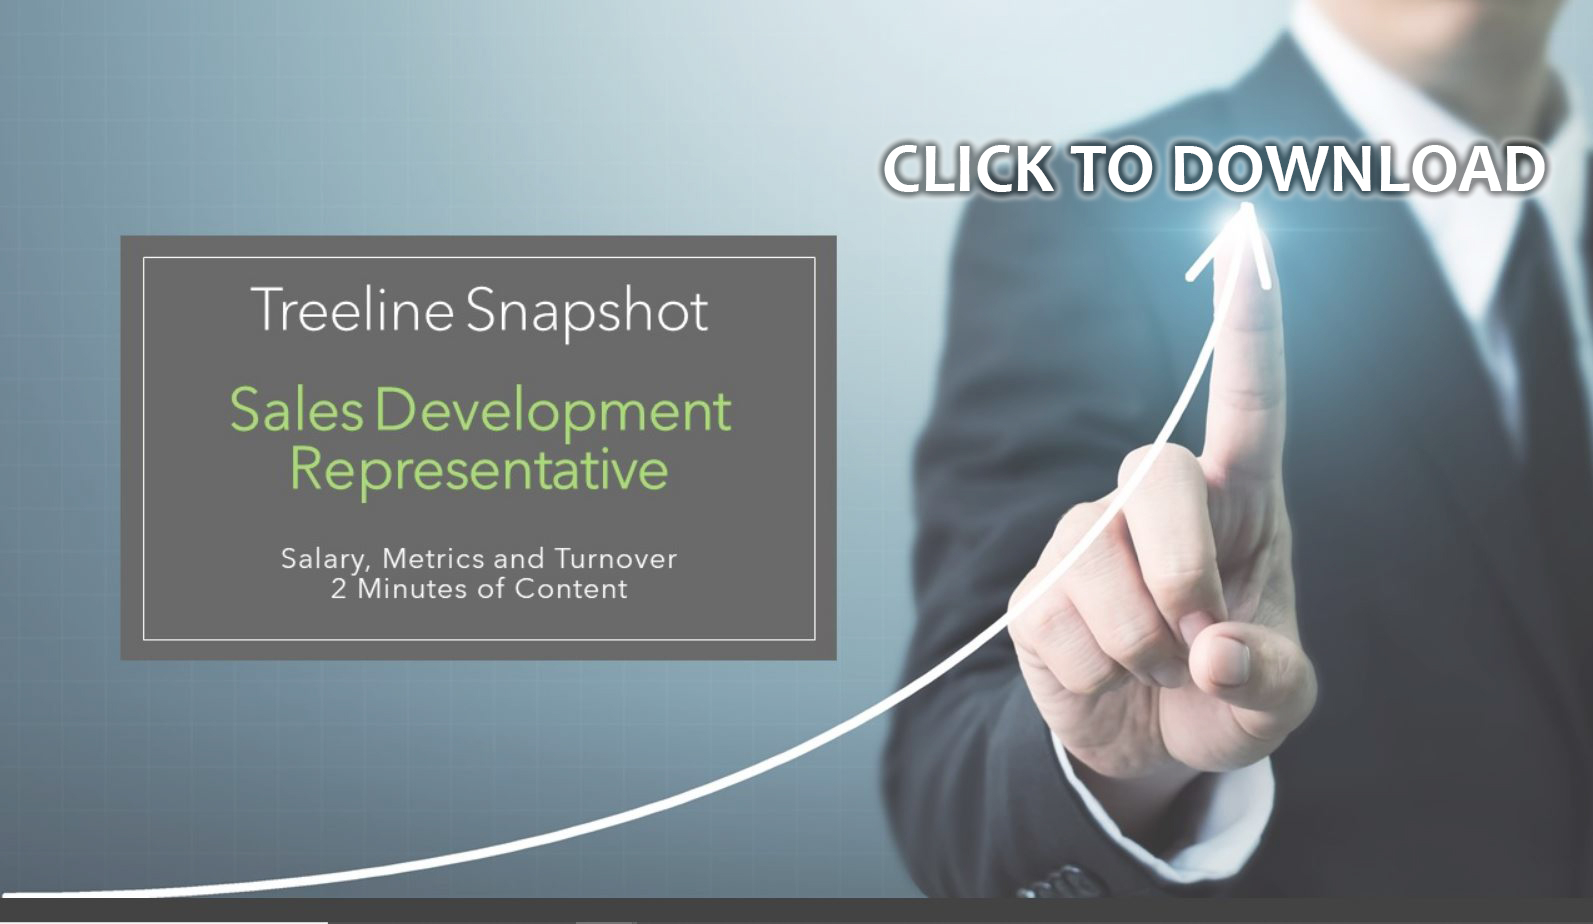 Sales Development Representative Snapshot - Download